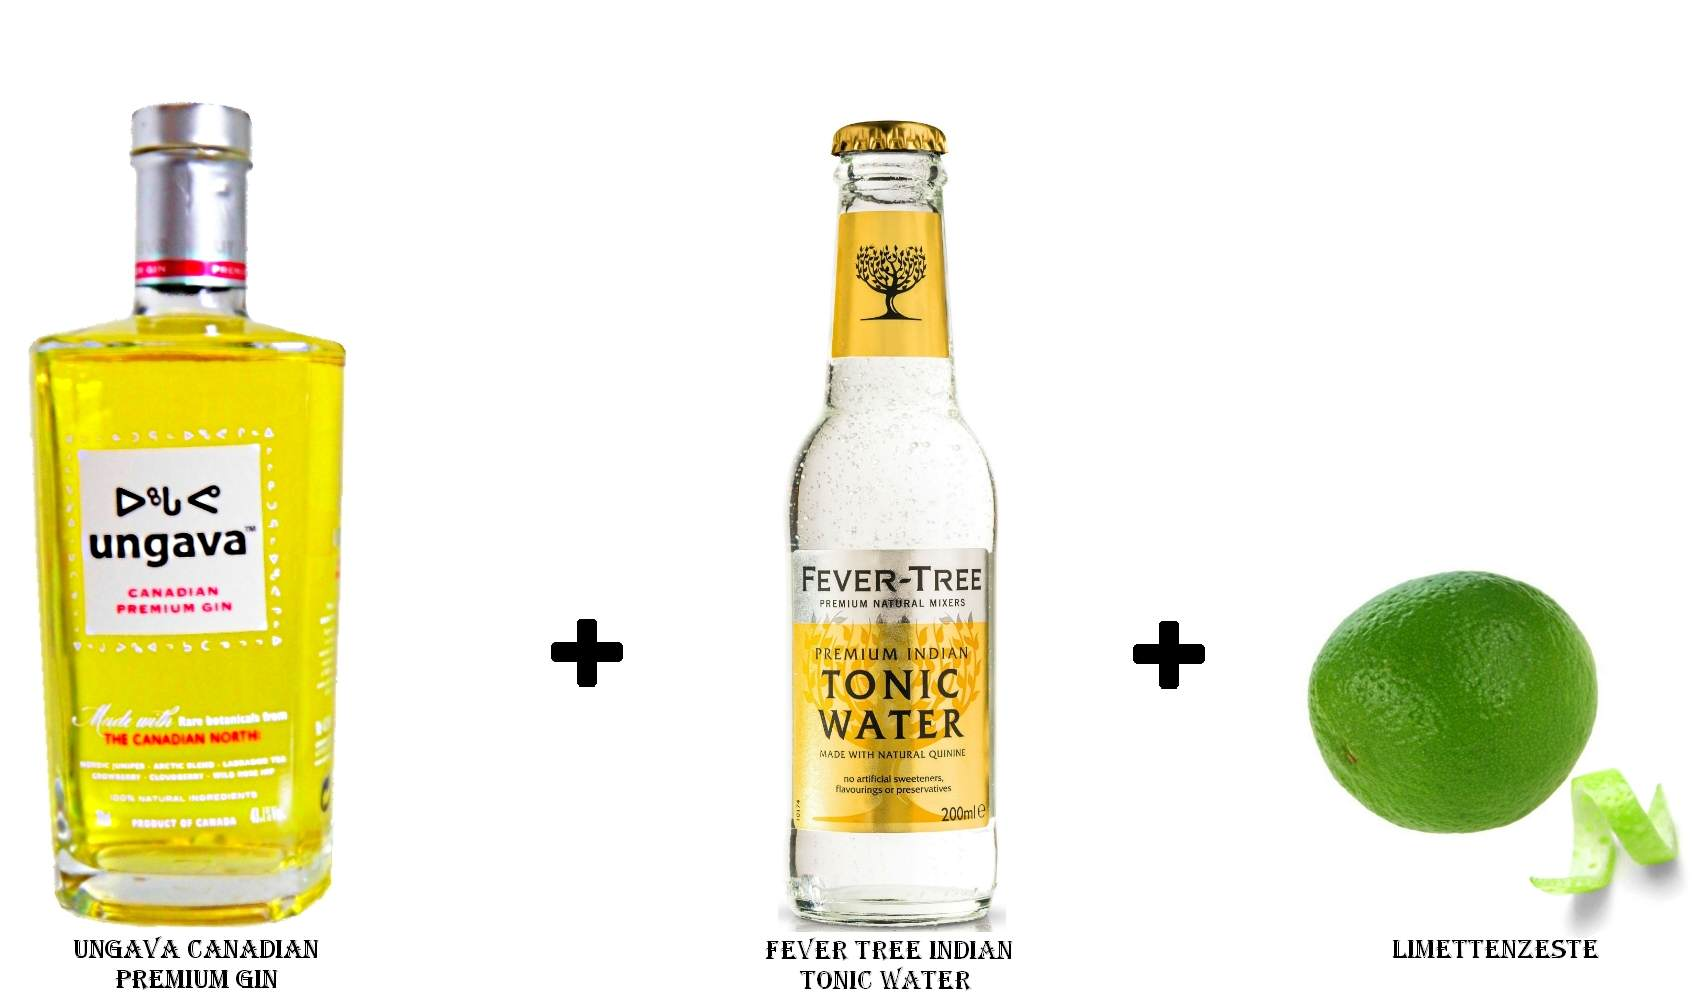 Ungava Canadian Premium Gin + Fever Tree Indian Tonic Water + Limettenzeste